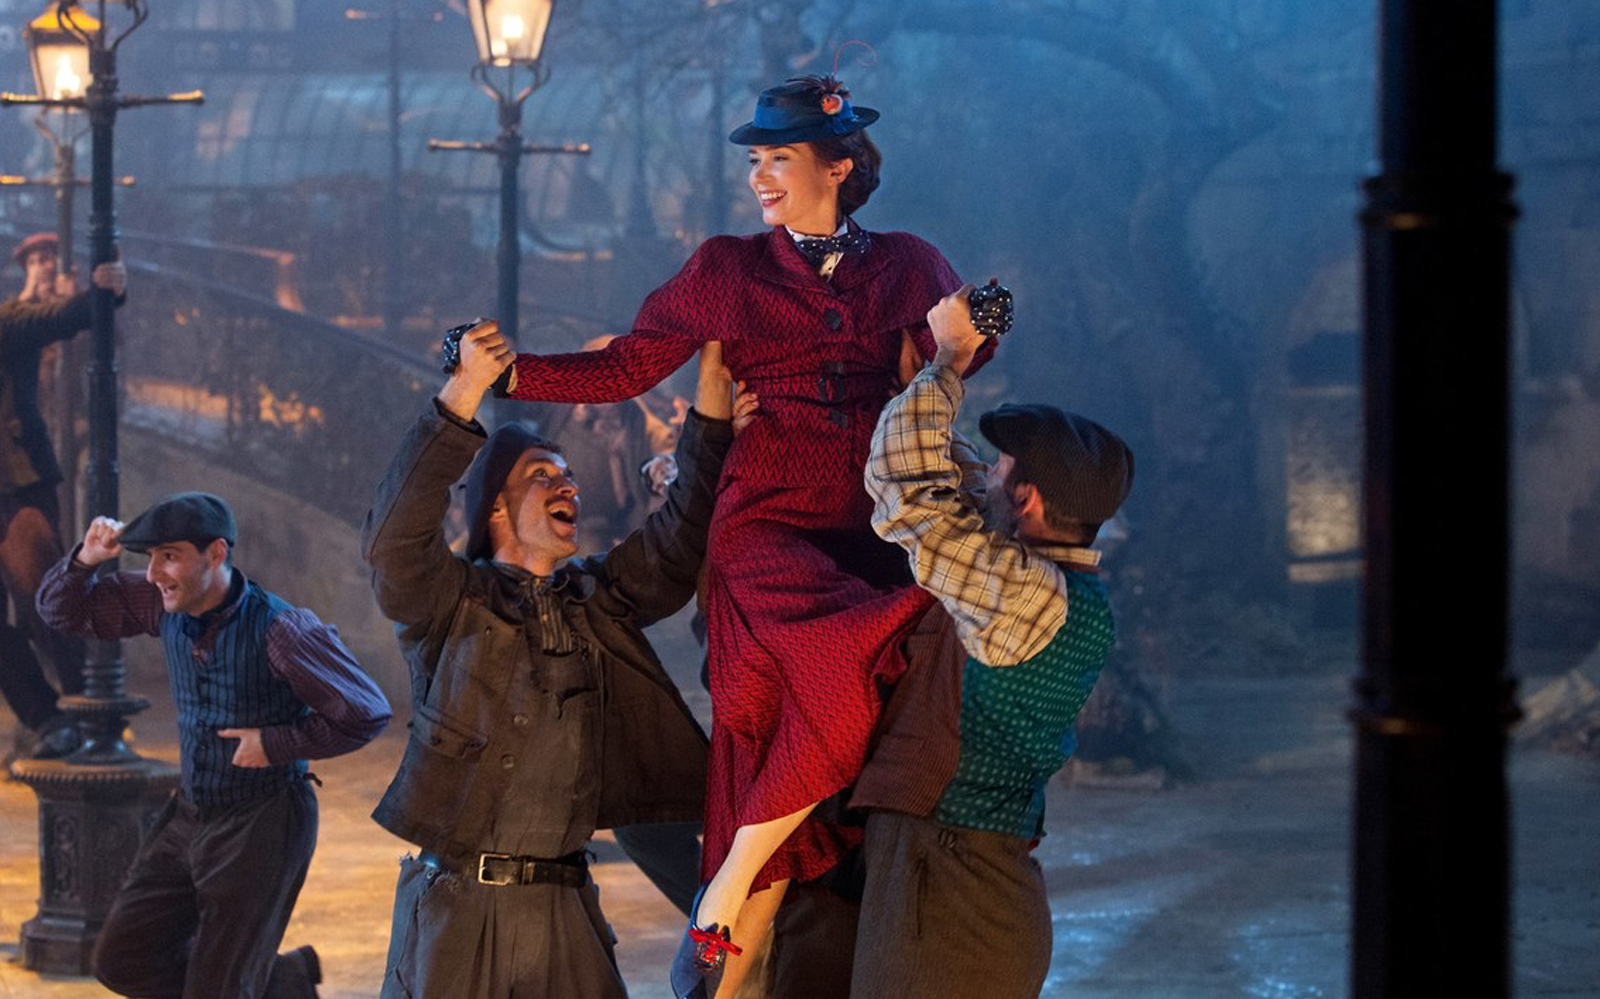 Cca47fd6 0c4f 437f a505 6fd48e722f92 10051 london mary poppins 02